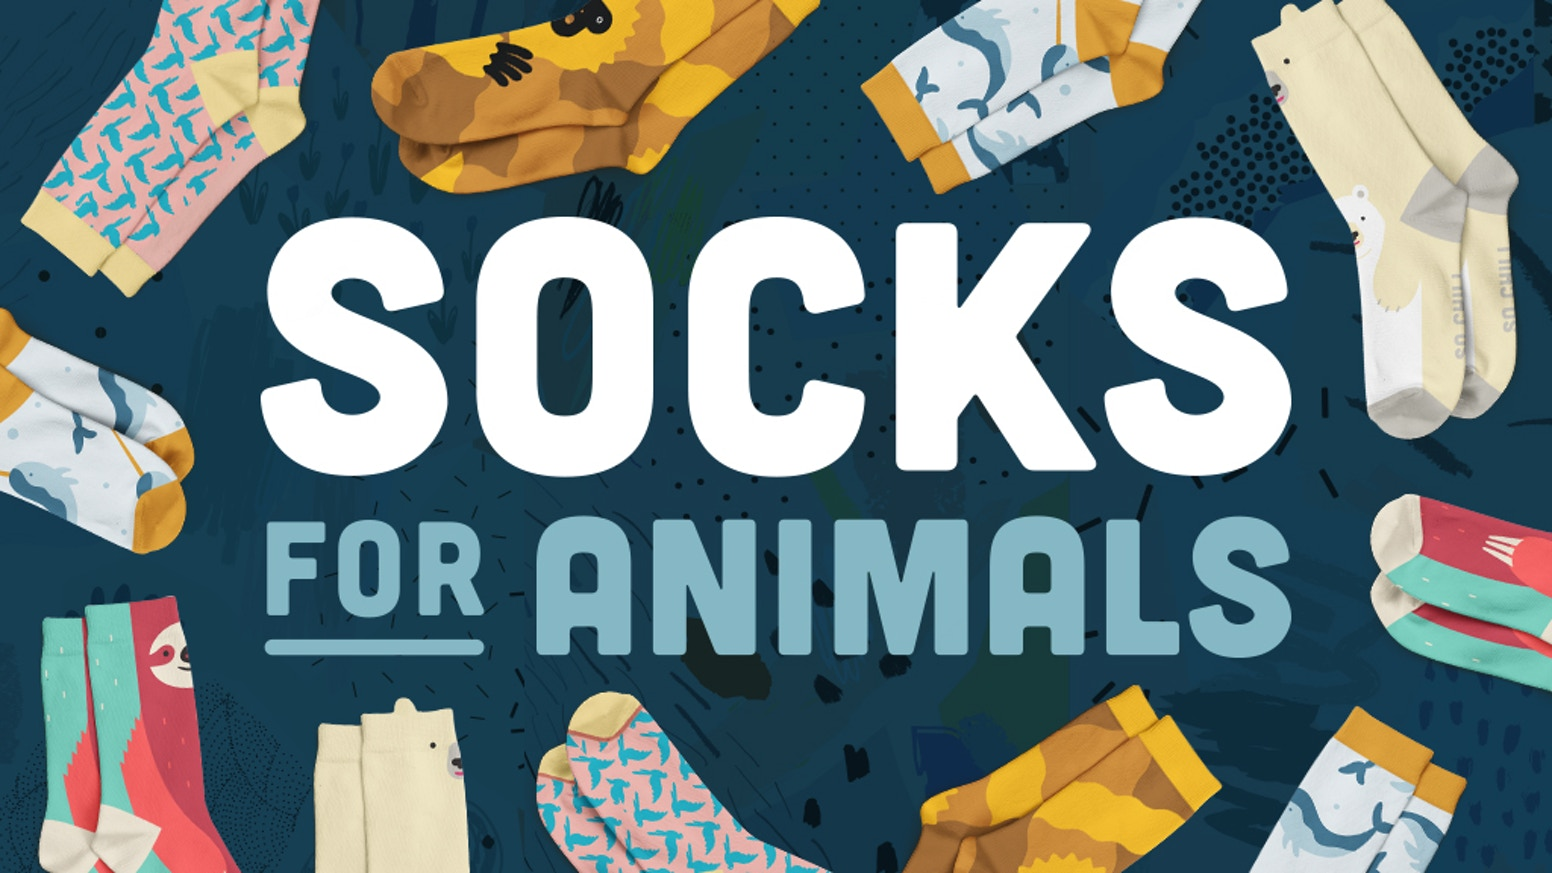 Socks HUMANS wear FOR wildlife research!